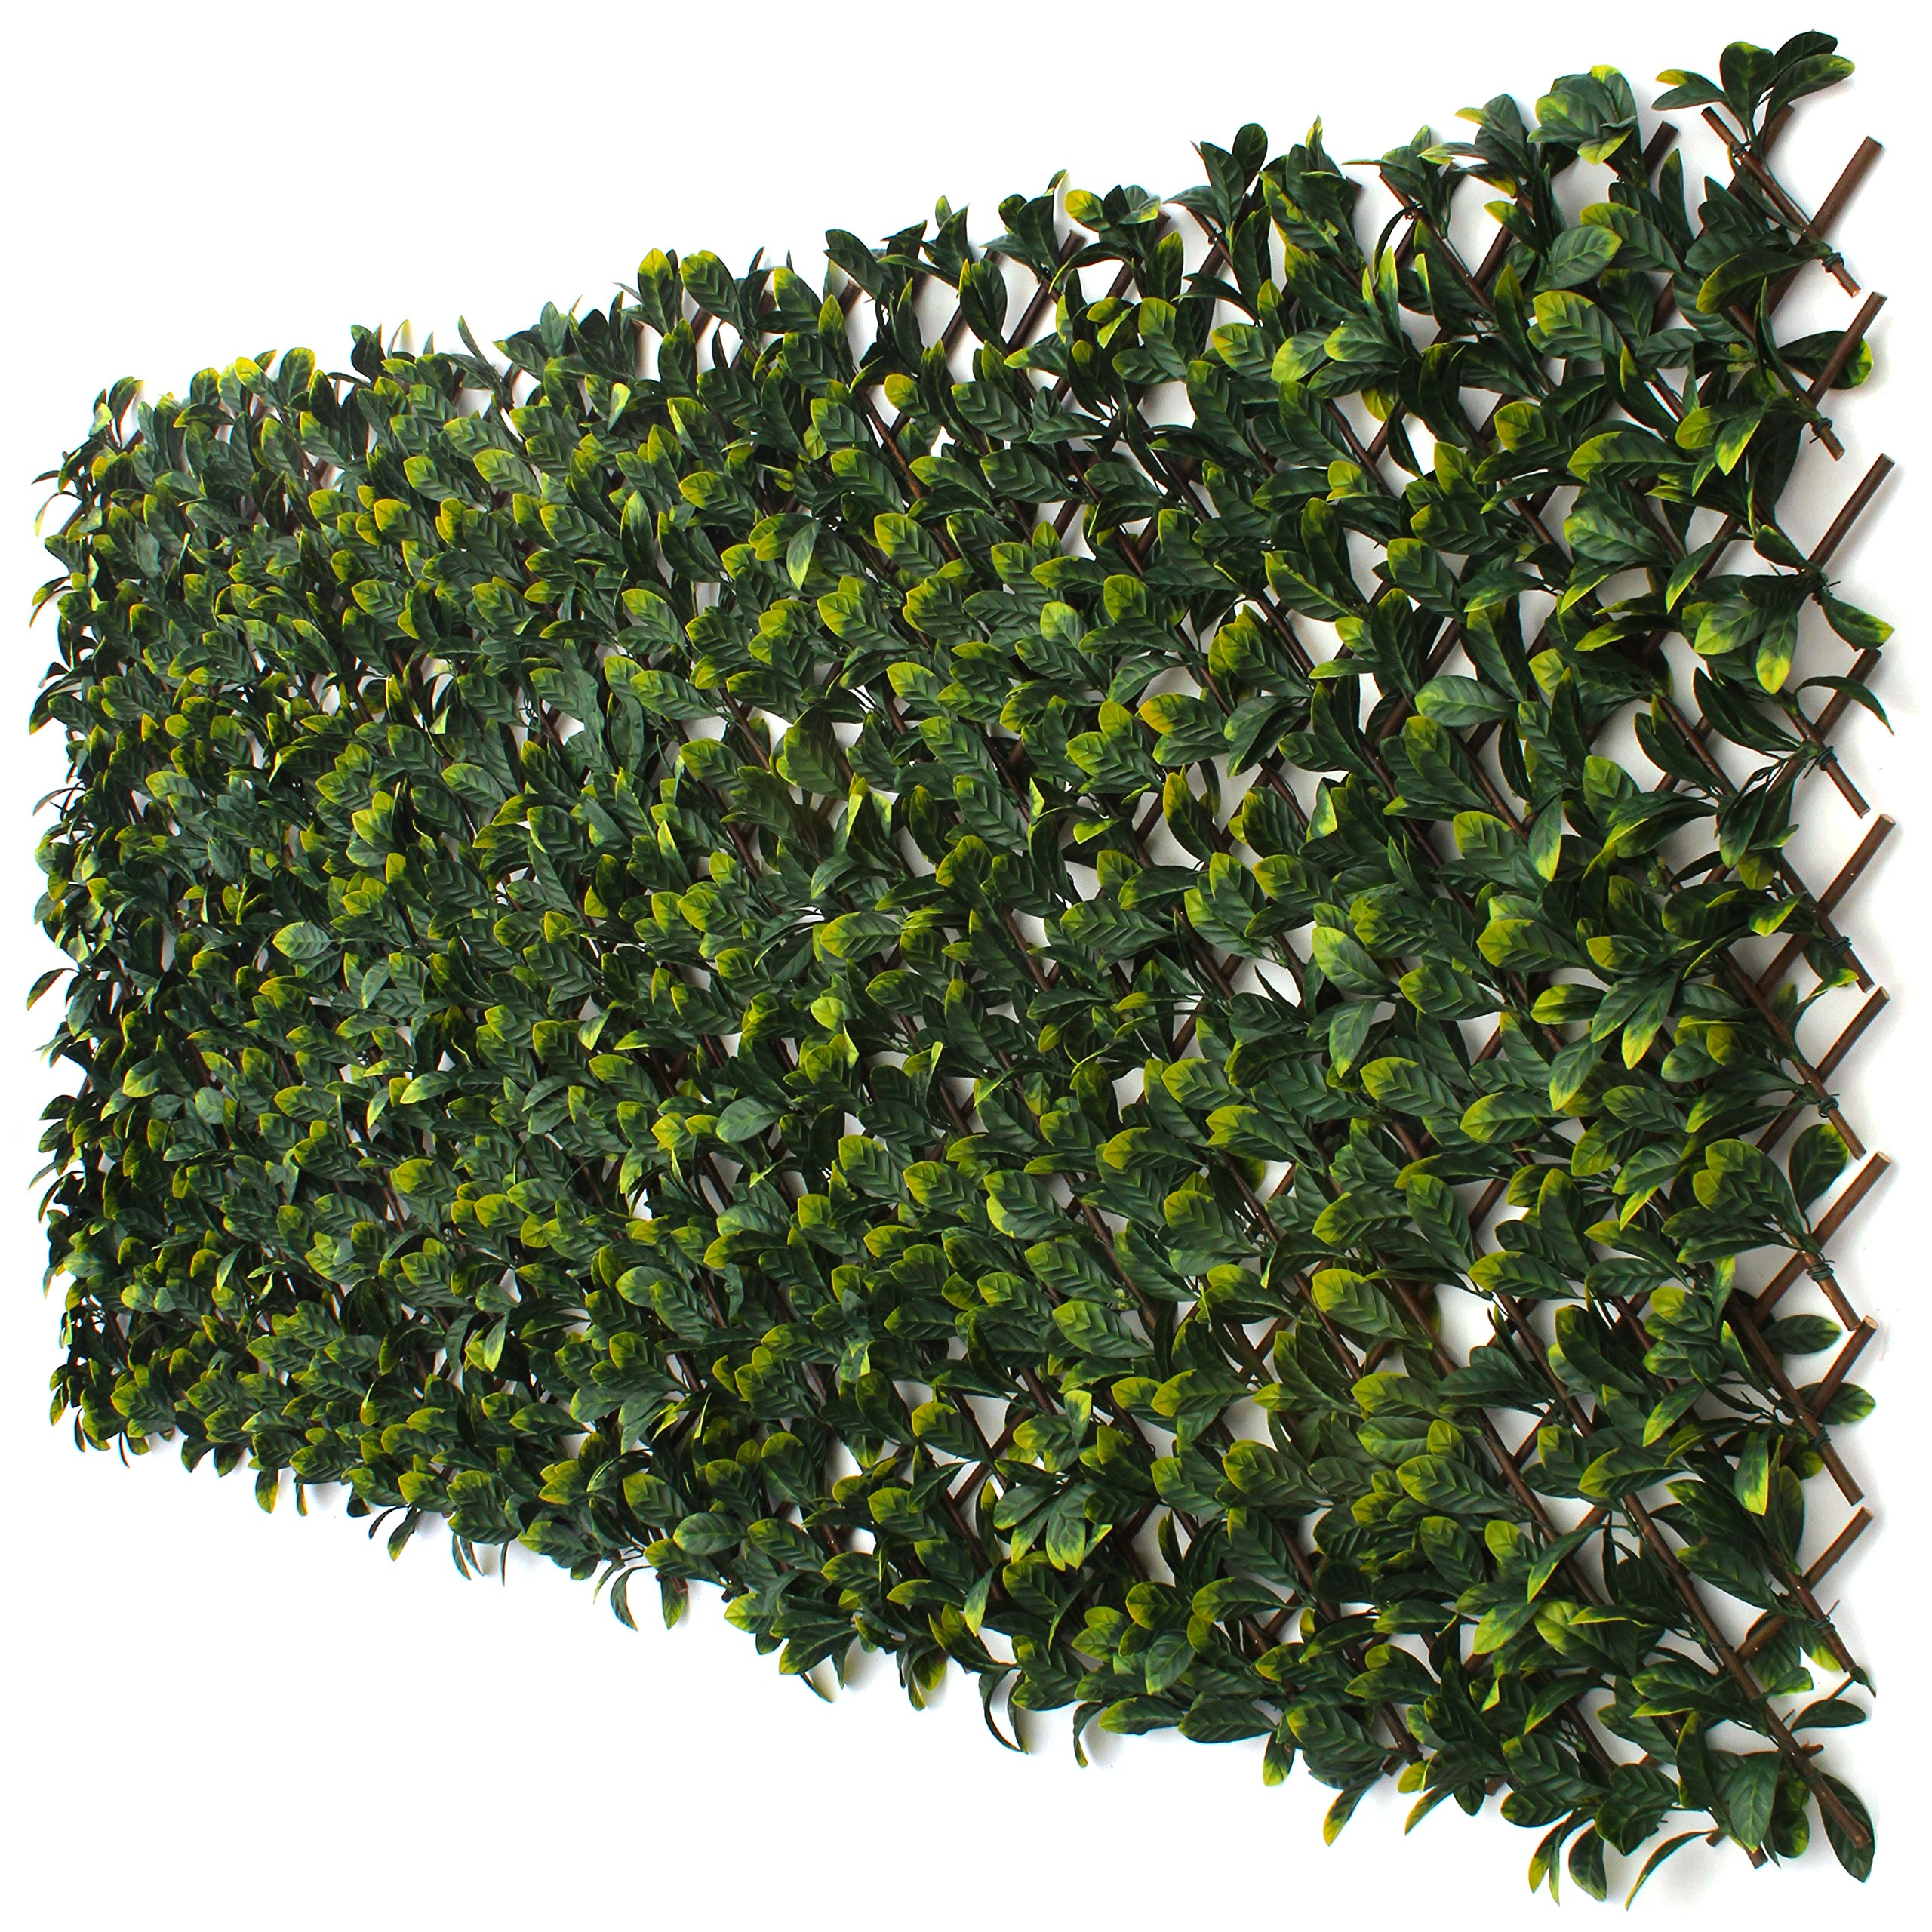 3rd Street Inn Laurel Leaf Trellis 1-Pack - Bamboo Greenery Panel - Boxwood and Ivy Privacy Fence Substitute - DIY Flexible Fencing